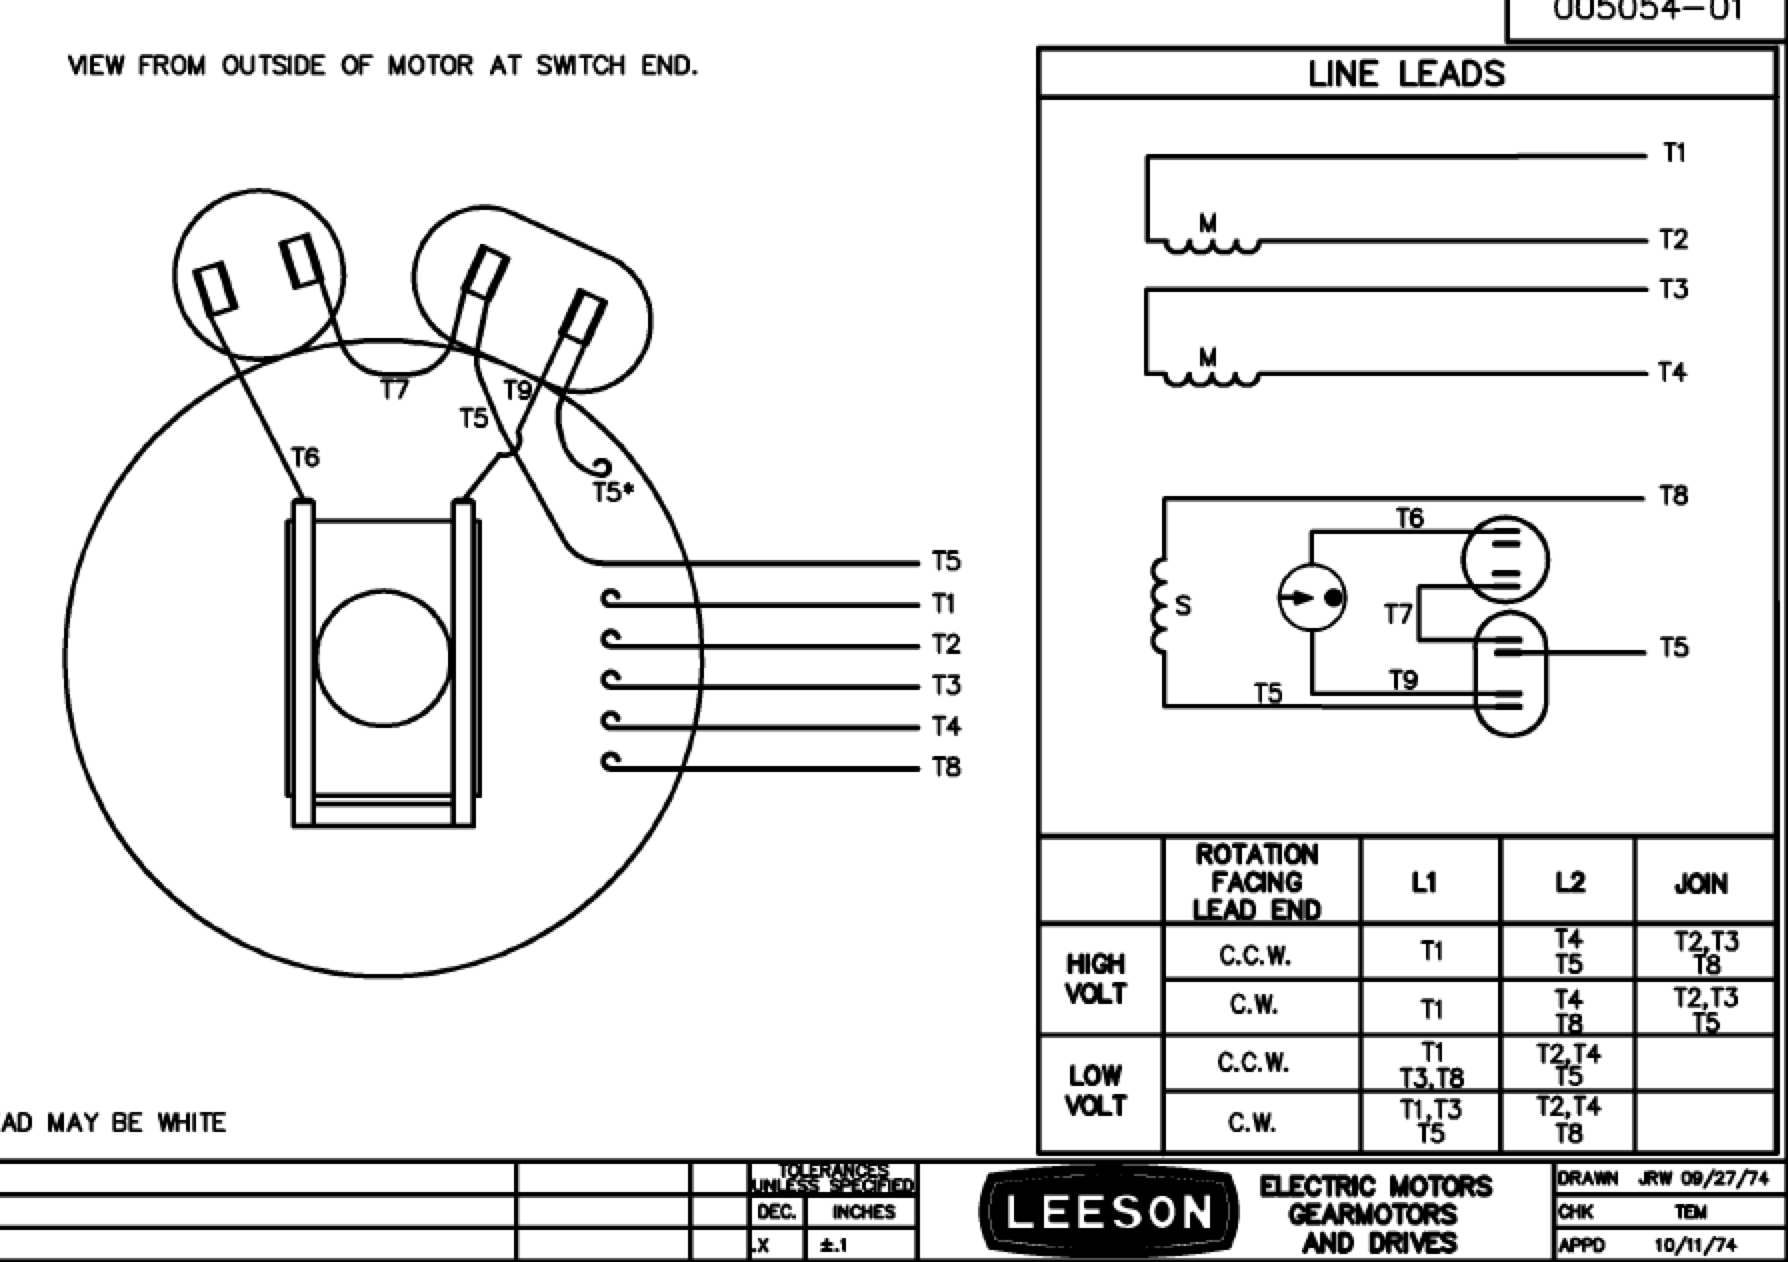 1ph motor wiring diagram 1ph wiring diagrams motor wiring diagram 2013 06 04 025457 screen shot 2013 06 04 at 10 52 40 am